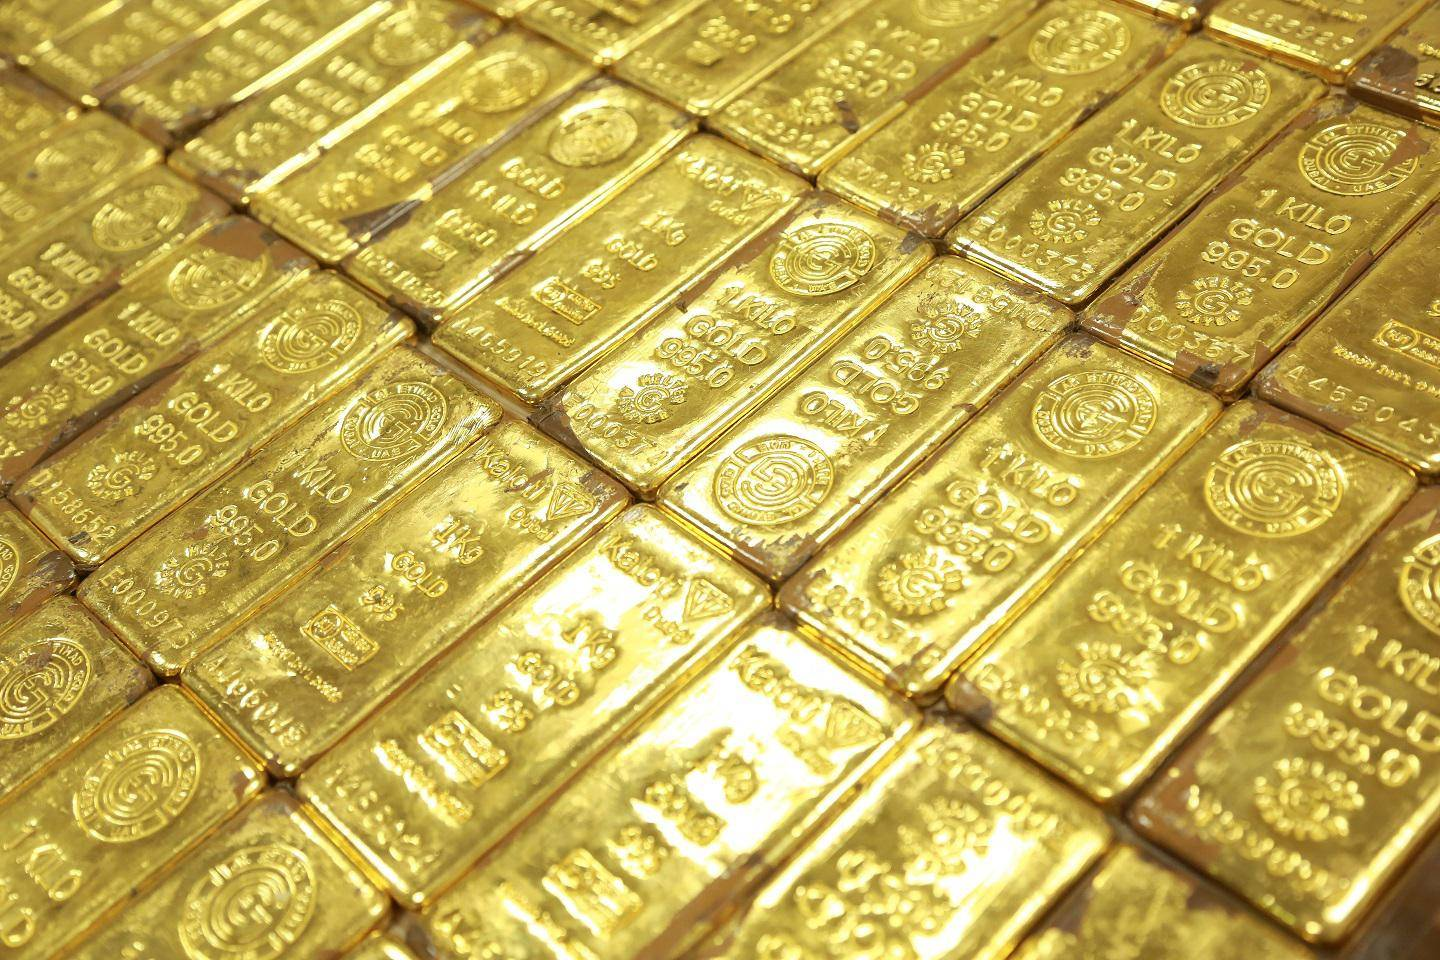 Khaleej times - Gold prices likely to gain this...